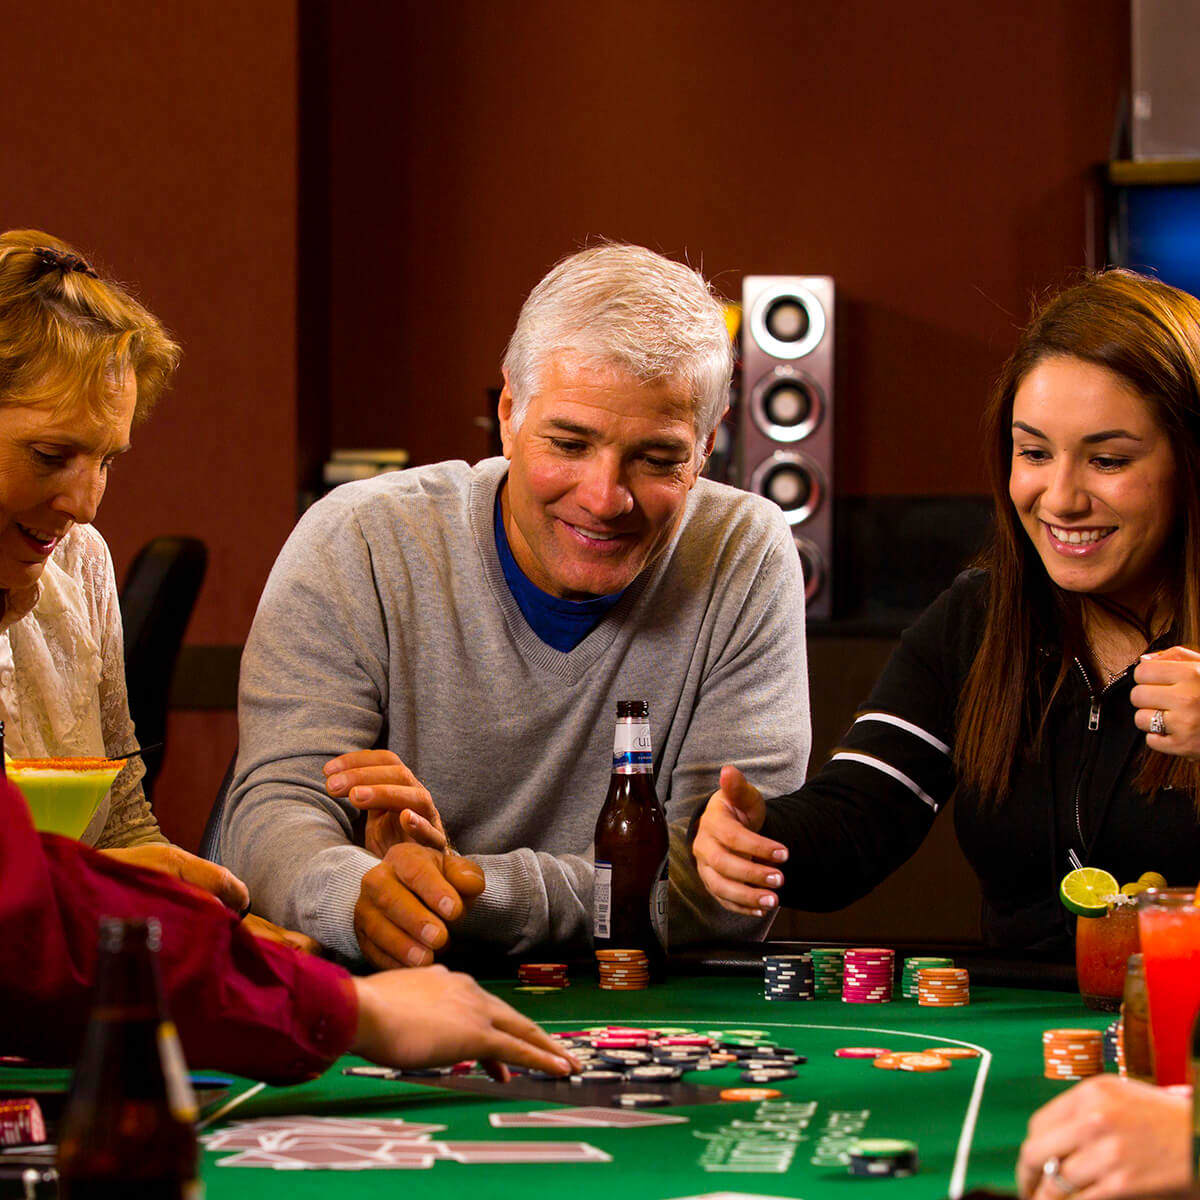 People playing poker